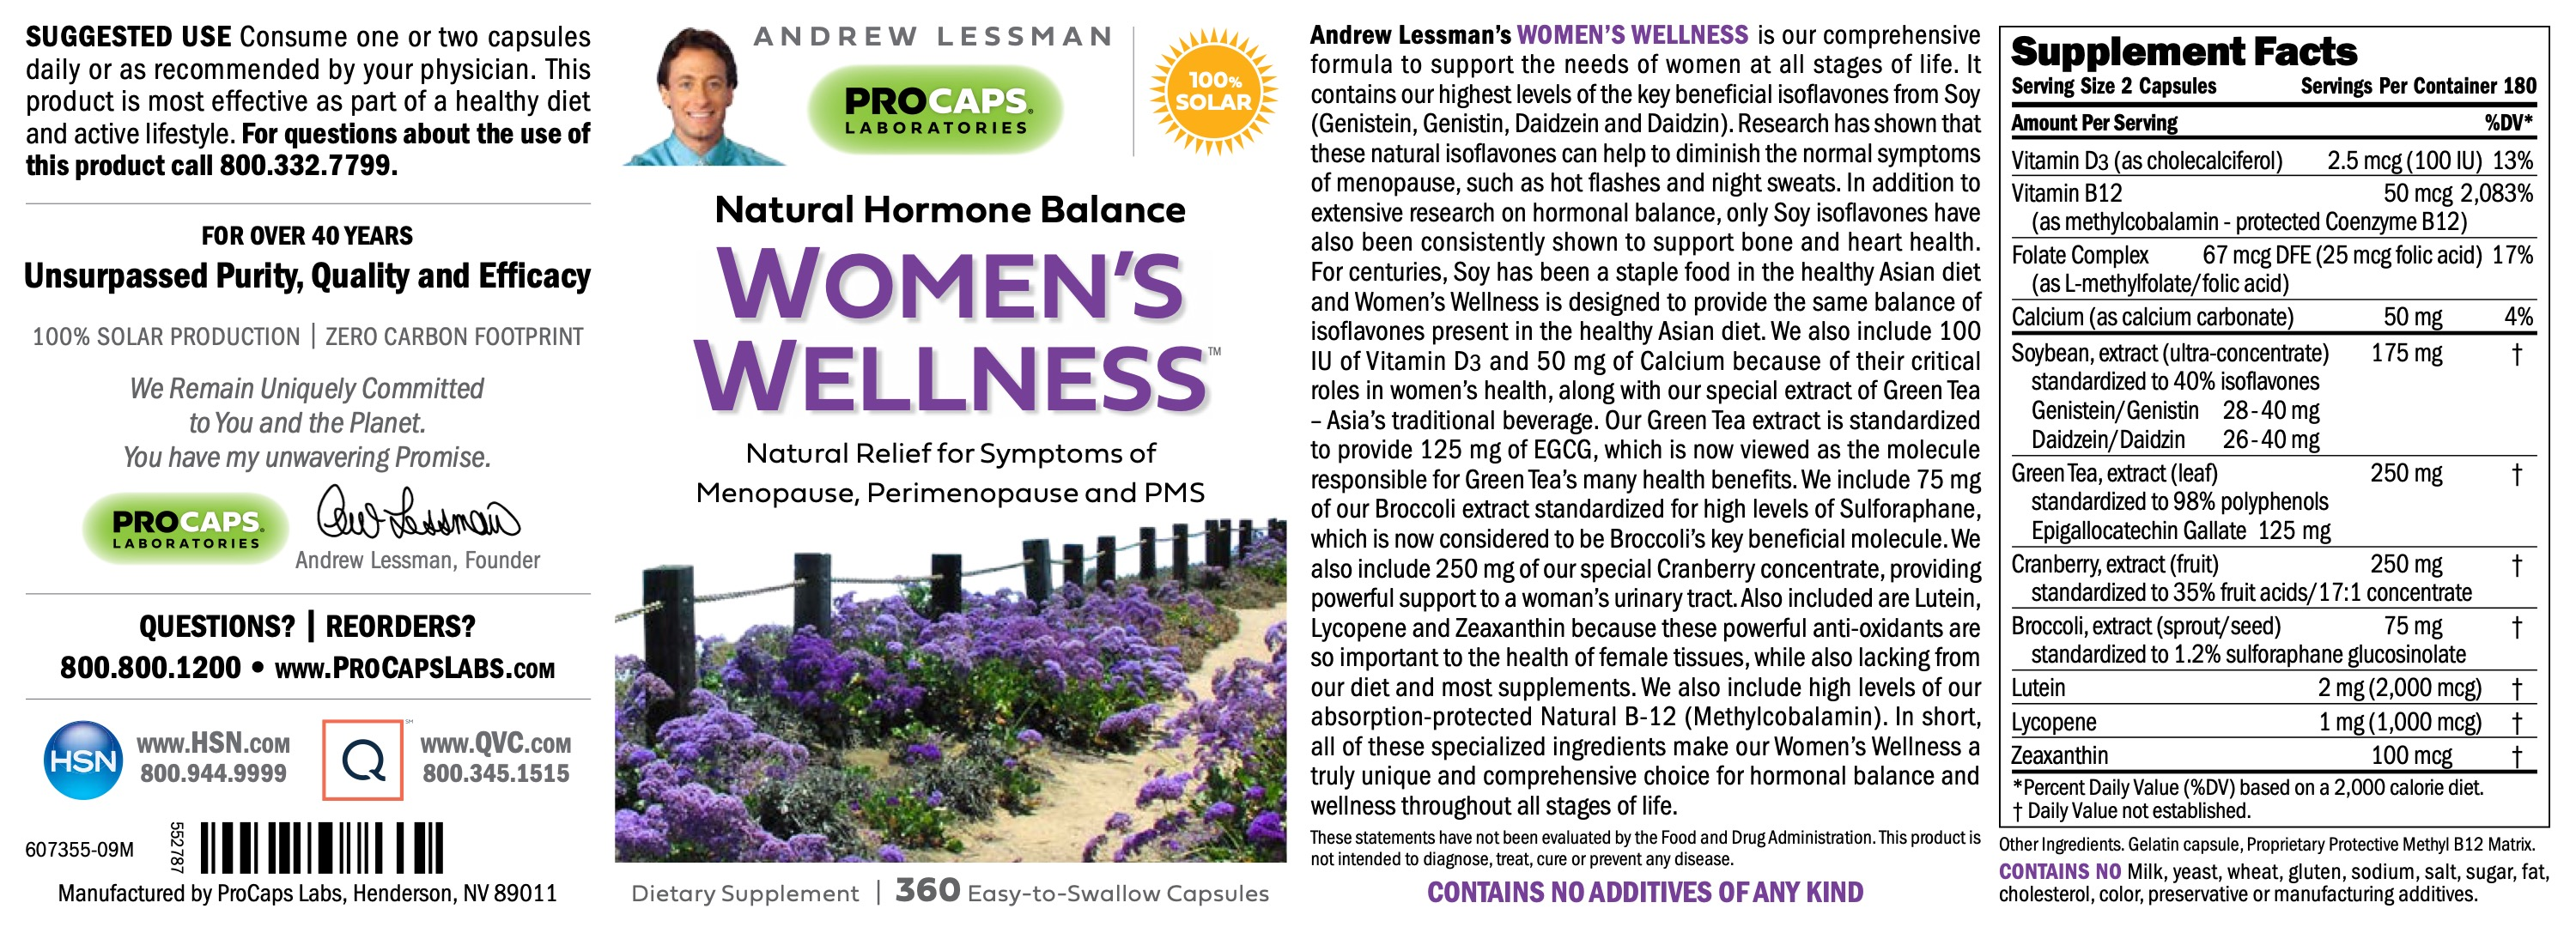 Women-s-Wellness-Capsules-Women-s-Products